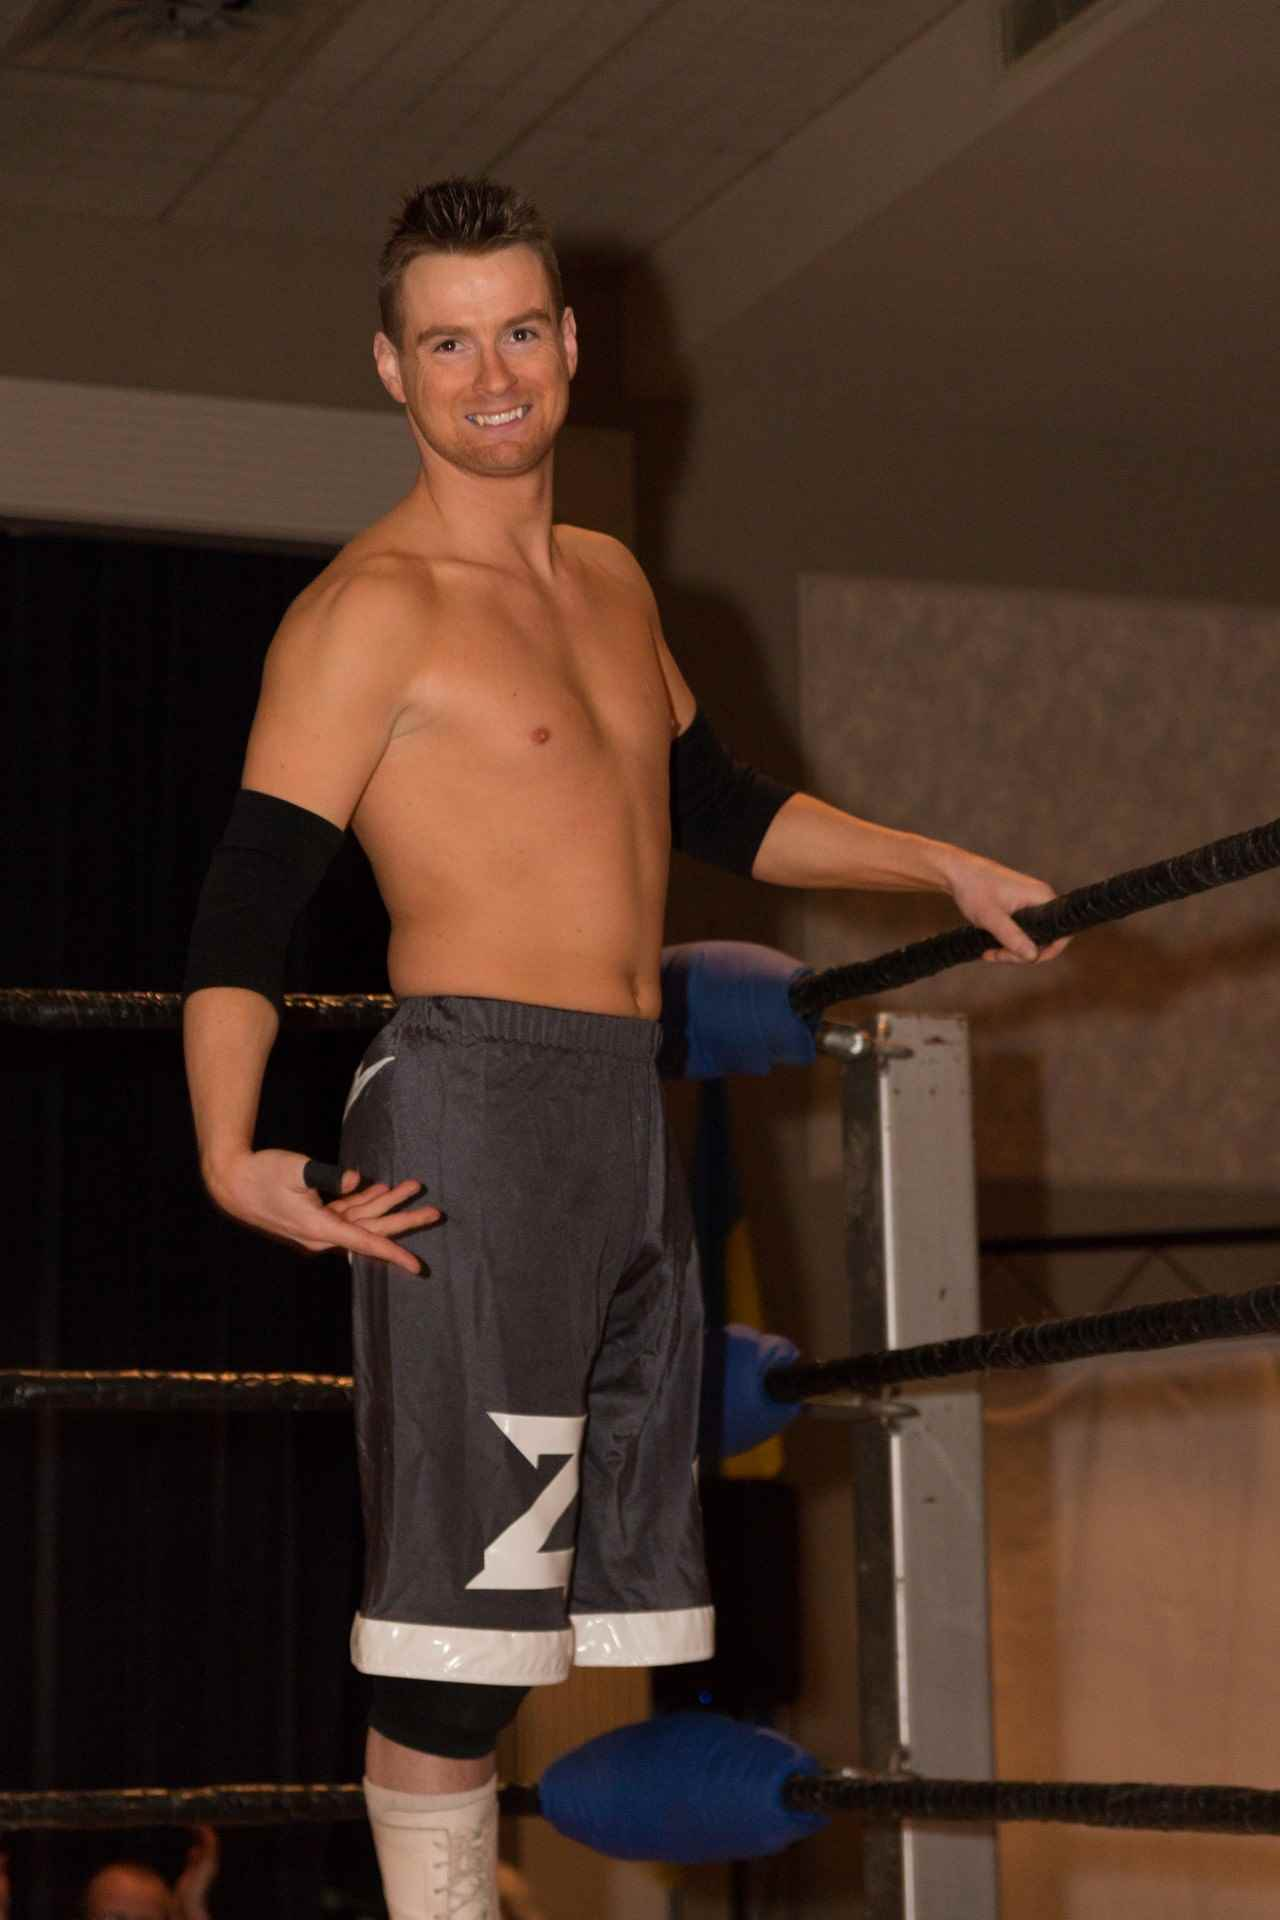 Wrestler Zach Gowen (Zachary Mark Gowen)